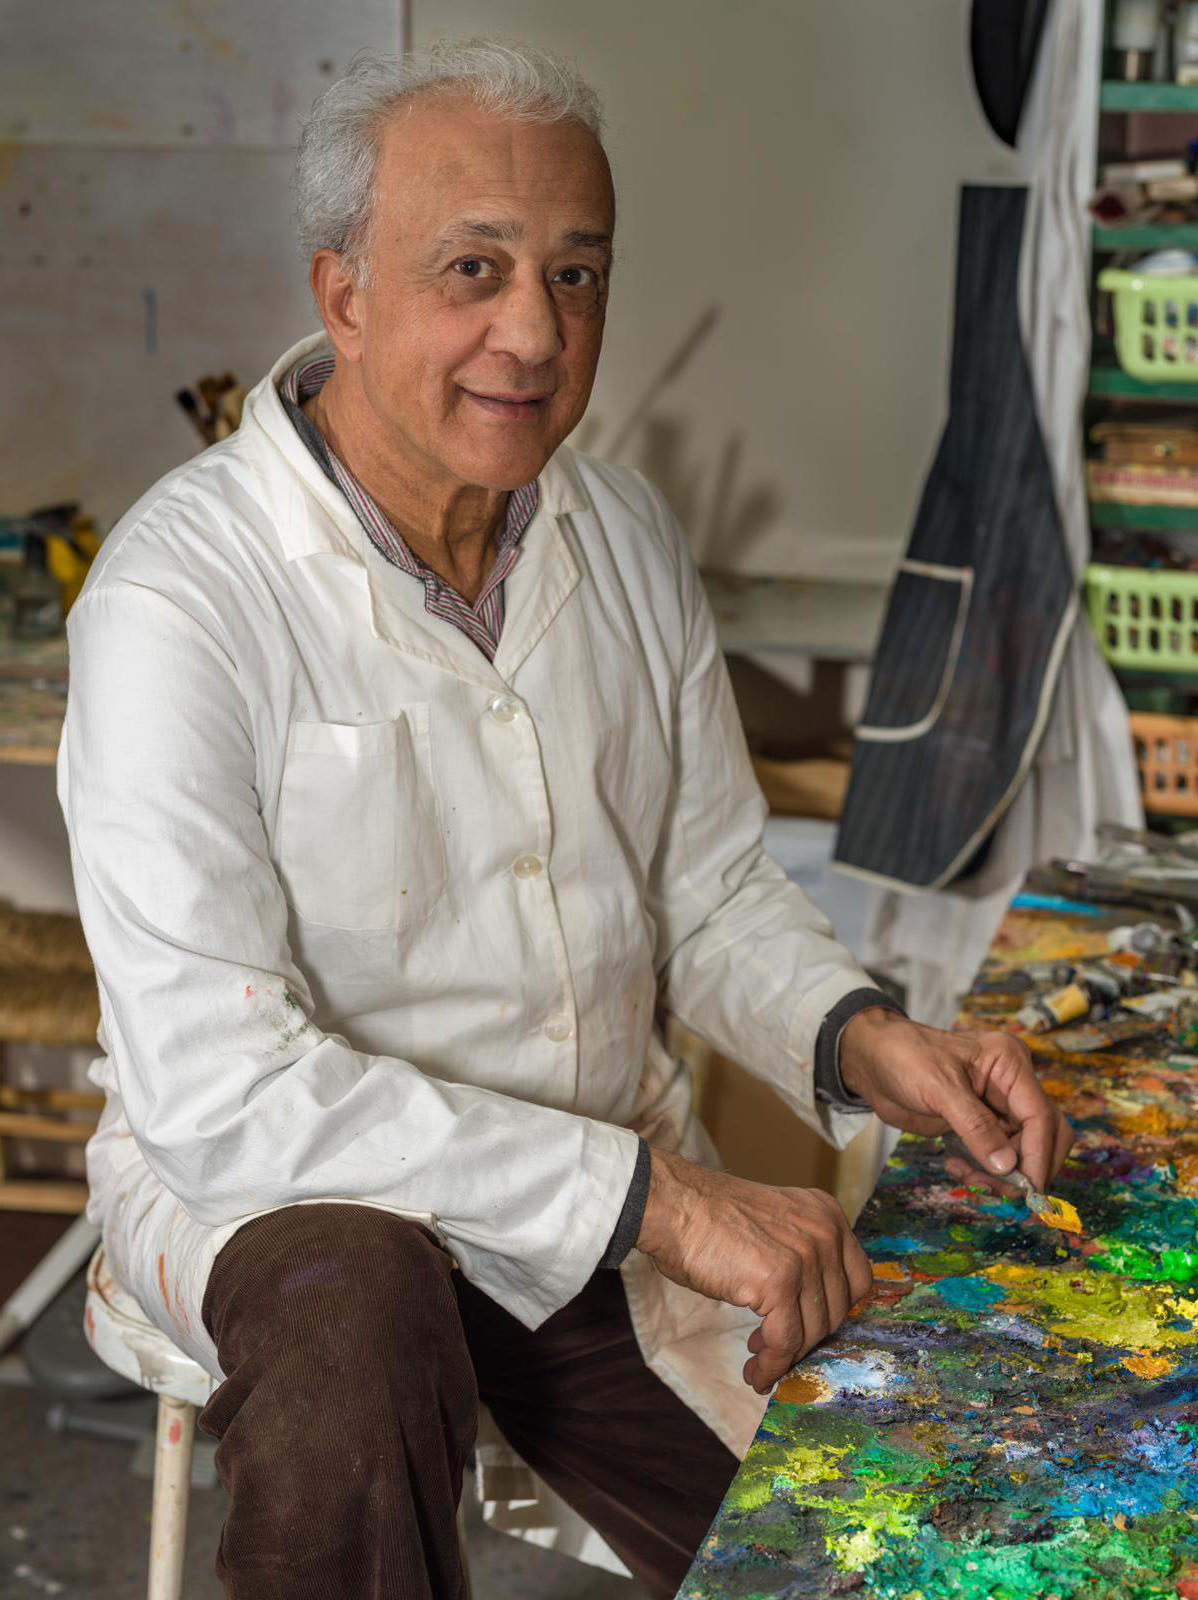 Nizar Daher - The most beautiful painting remains never drawn